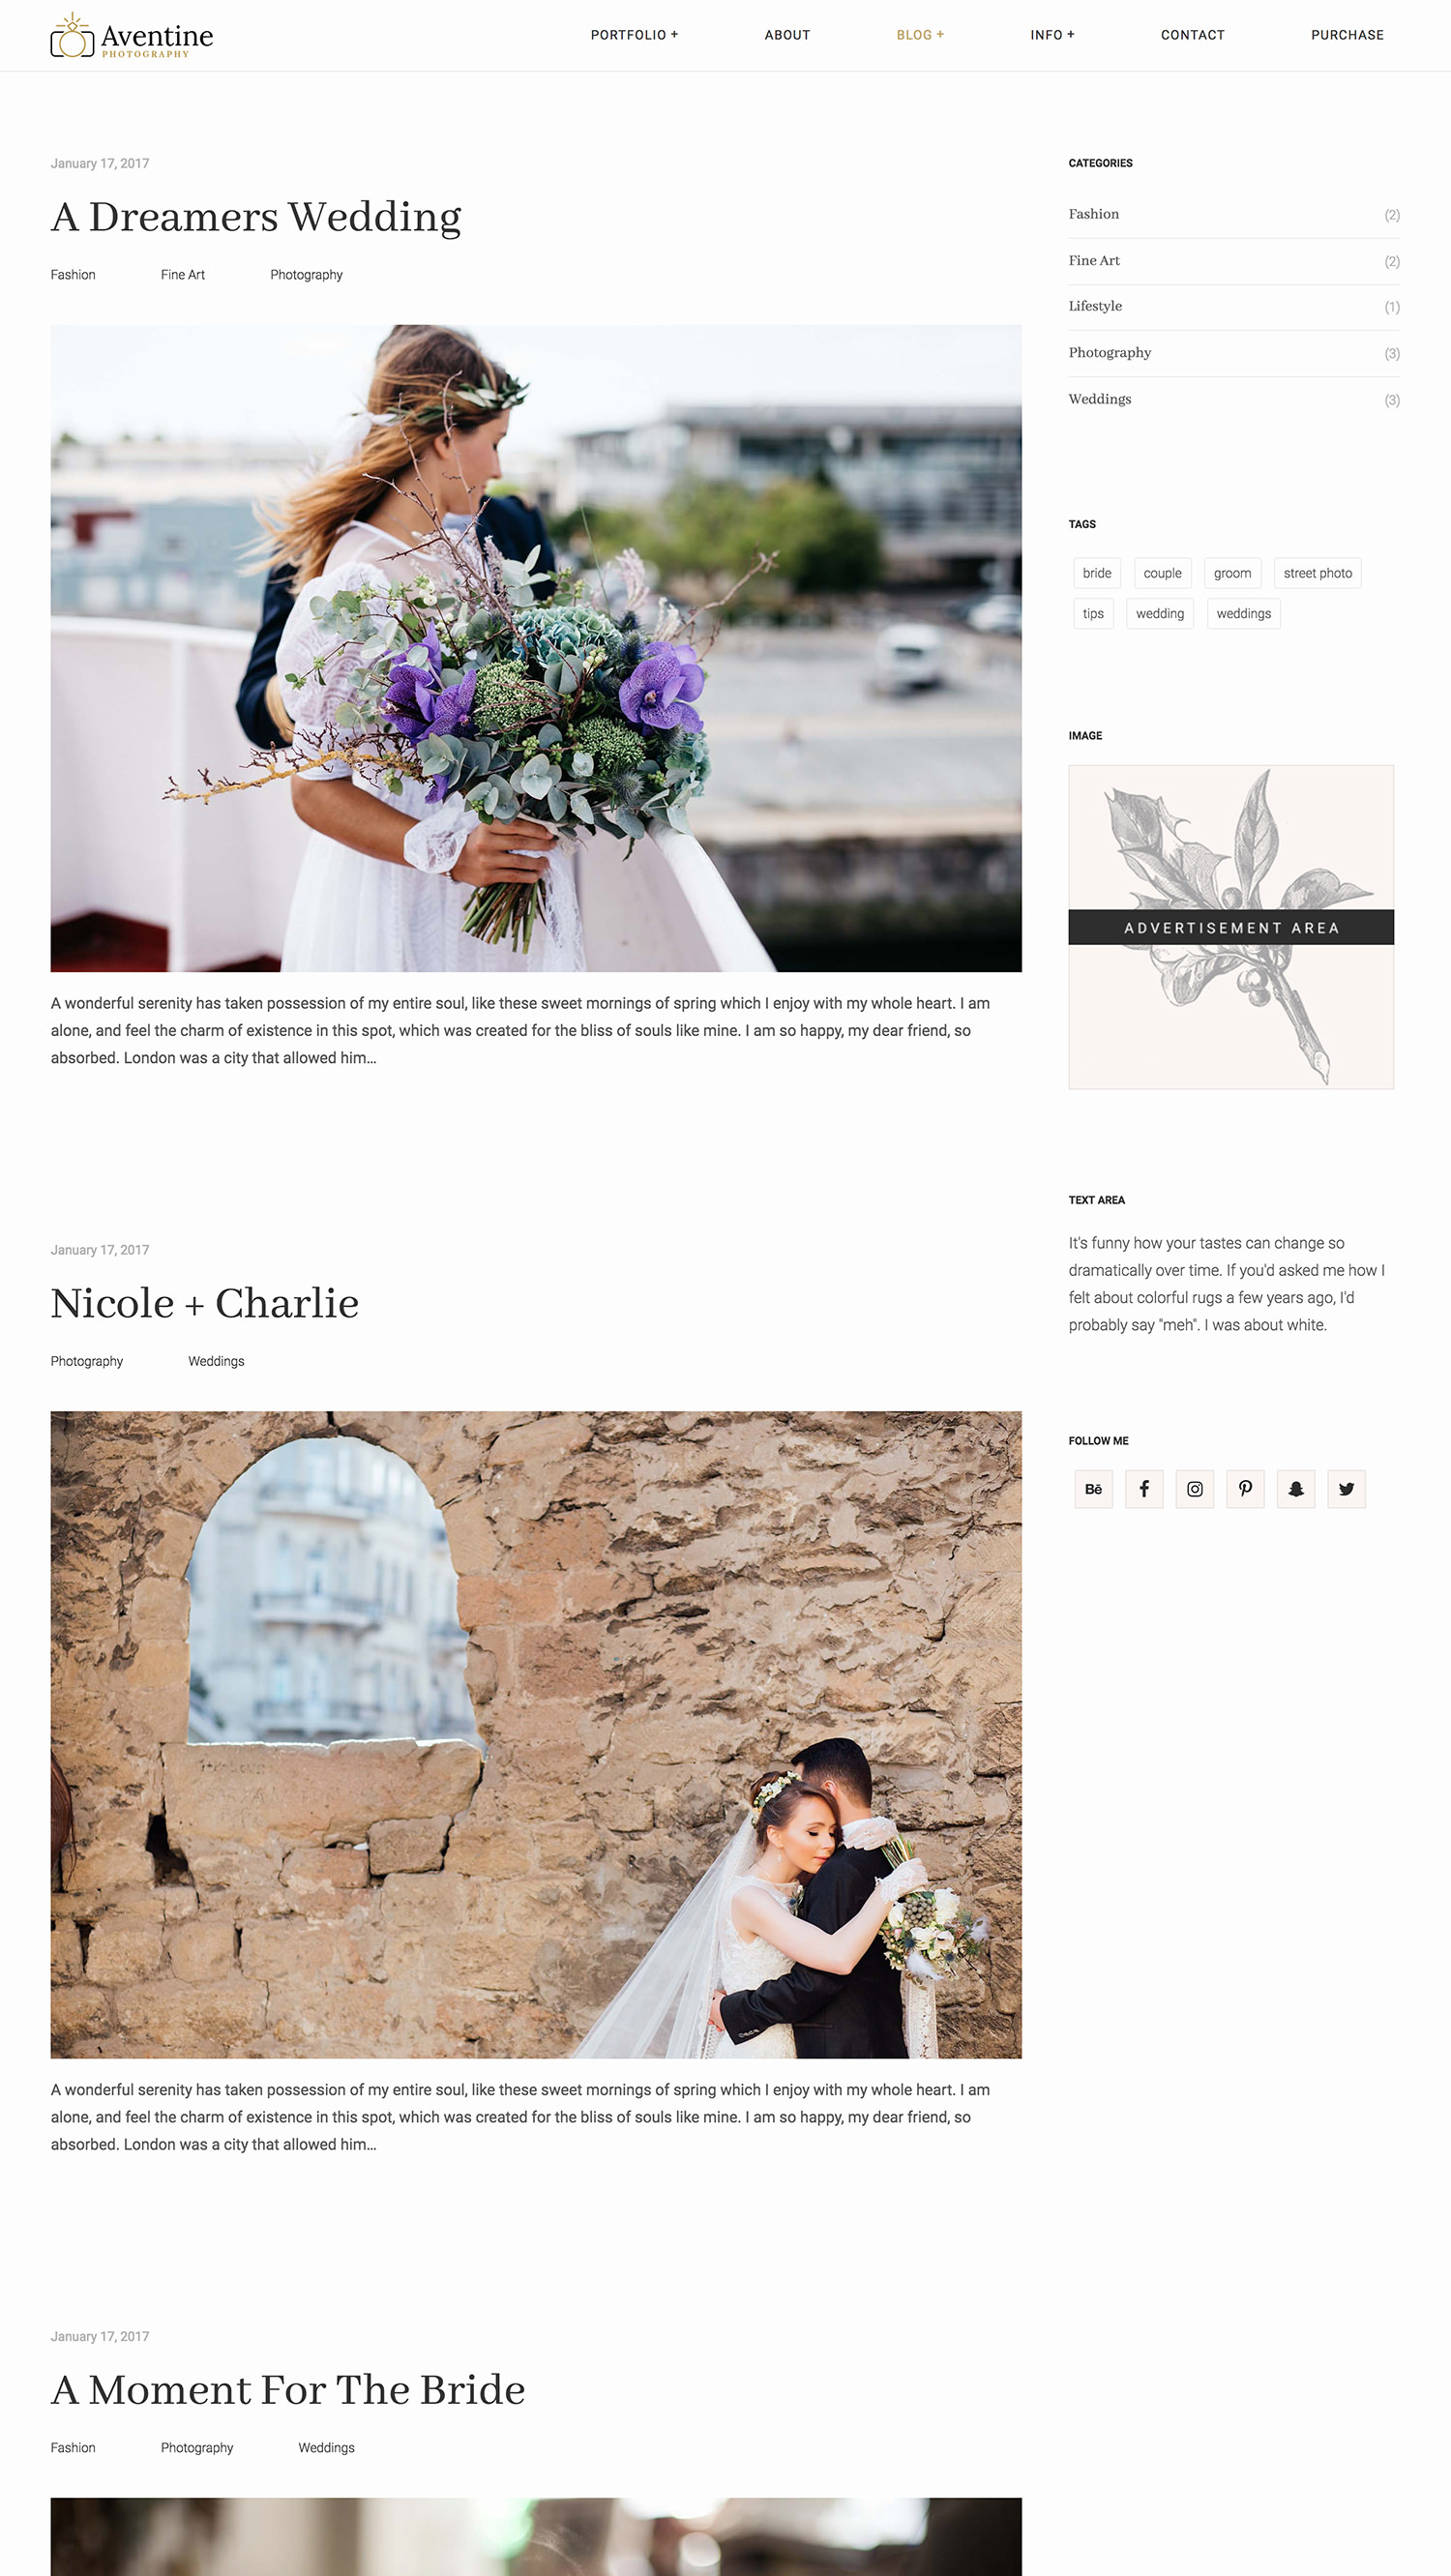 Aventine Wedding Photography WordPress Theme - classic blog layout